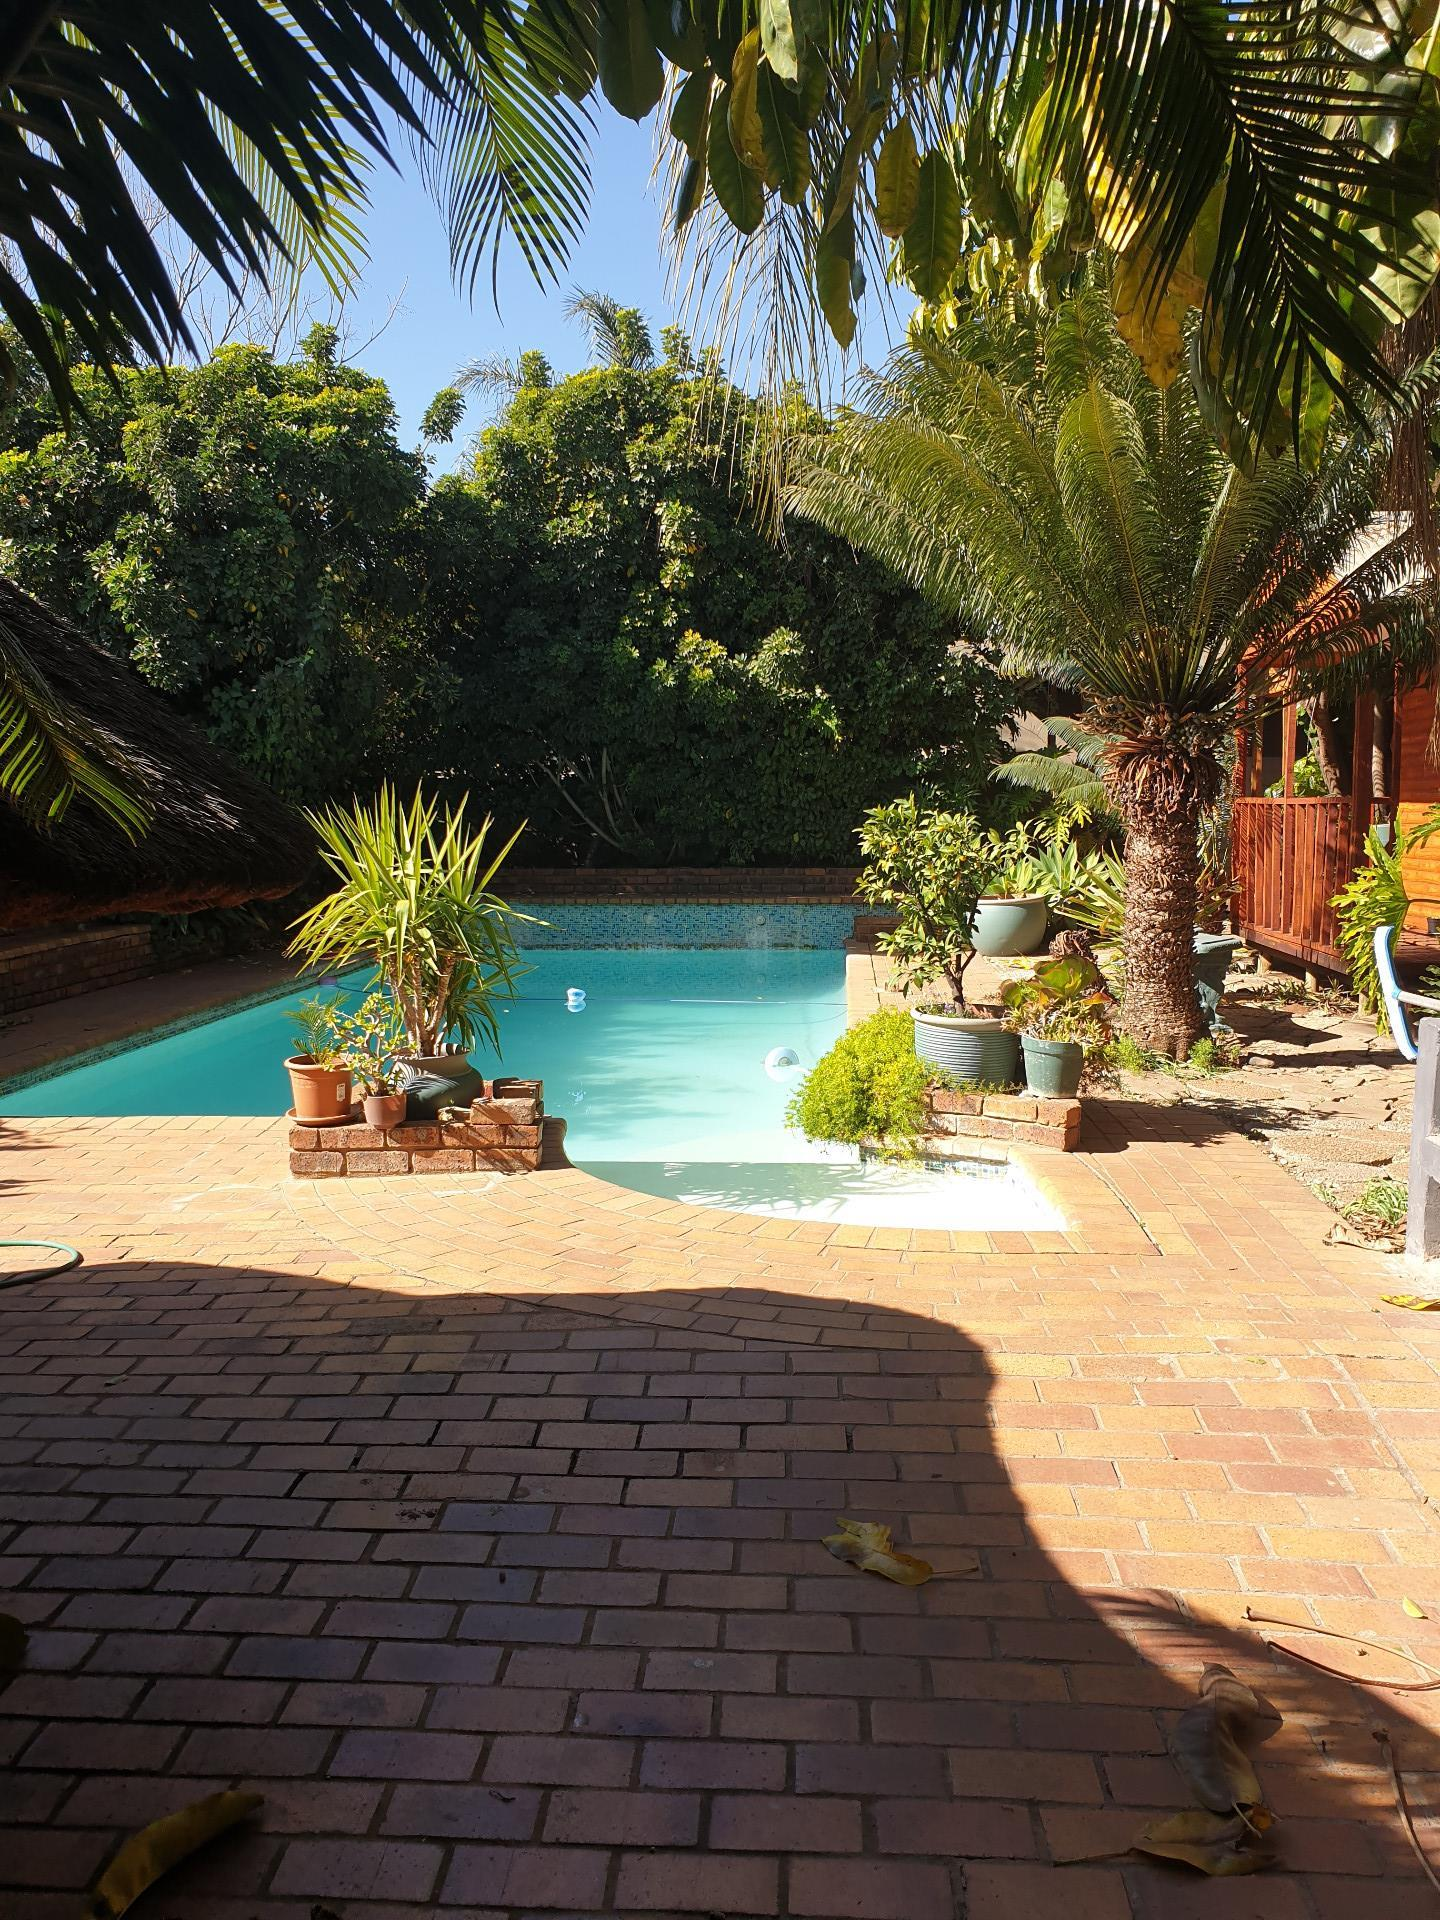 6 Bedroom House For Sale in Capital Park